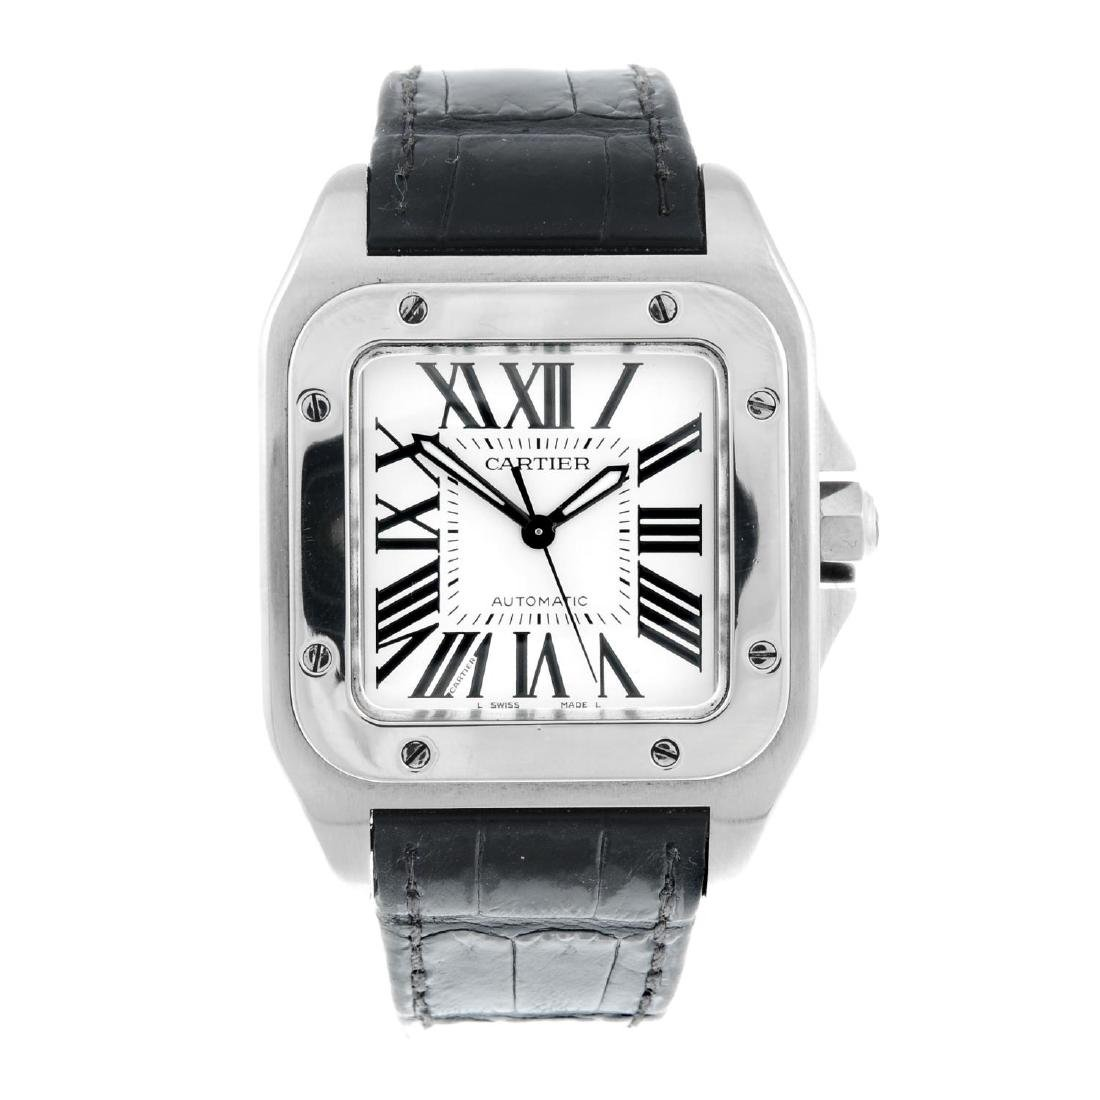 CARTIER - a Santos 100 wrist watch. Stainless steel